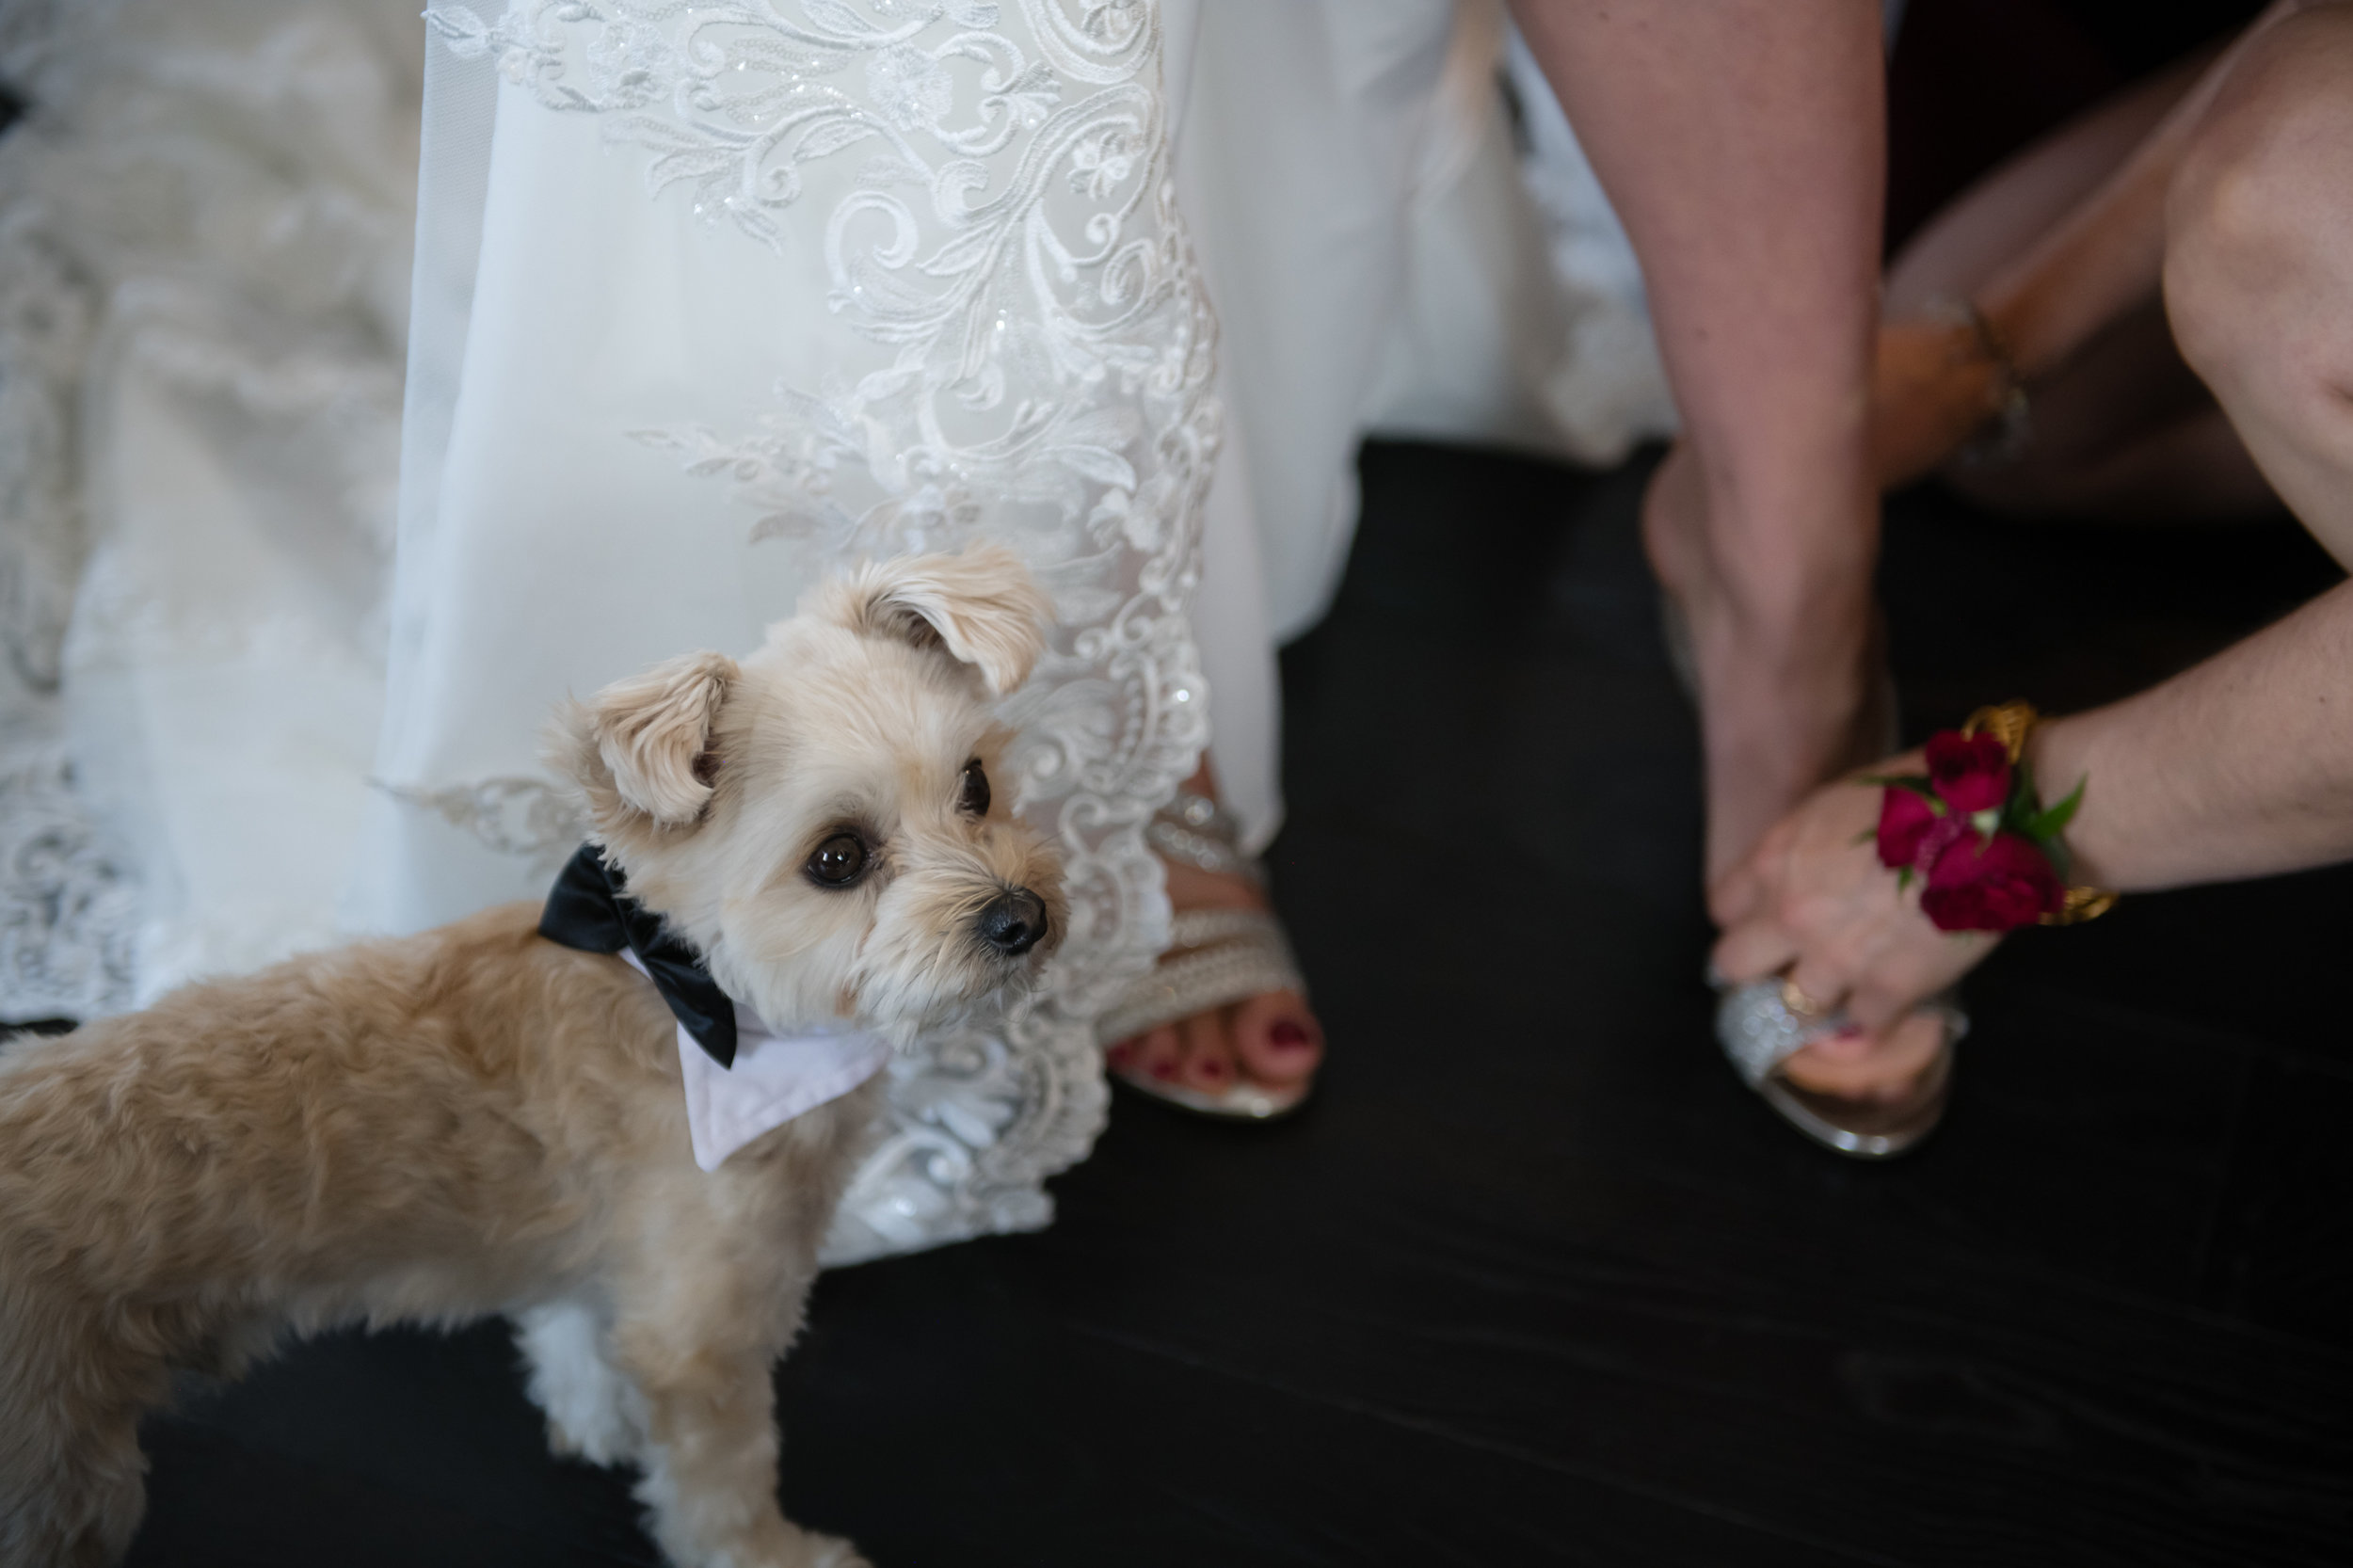 Laura_Danny_Wedding_Sneak_Peek_021.jpg